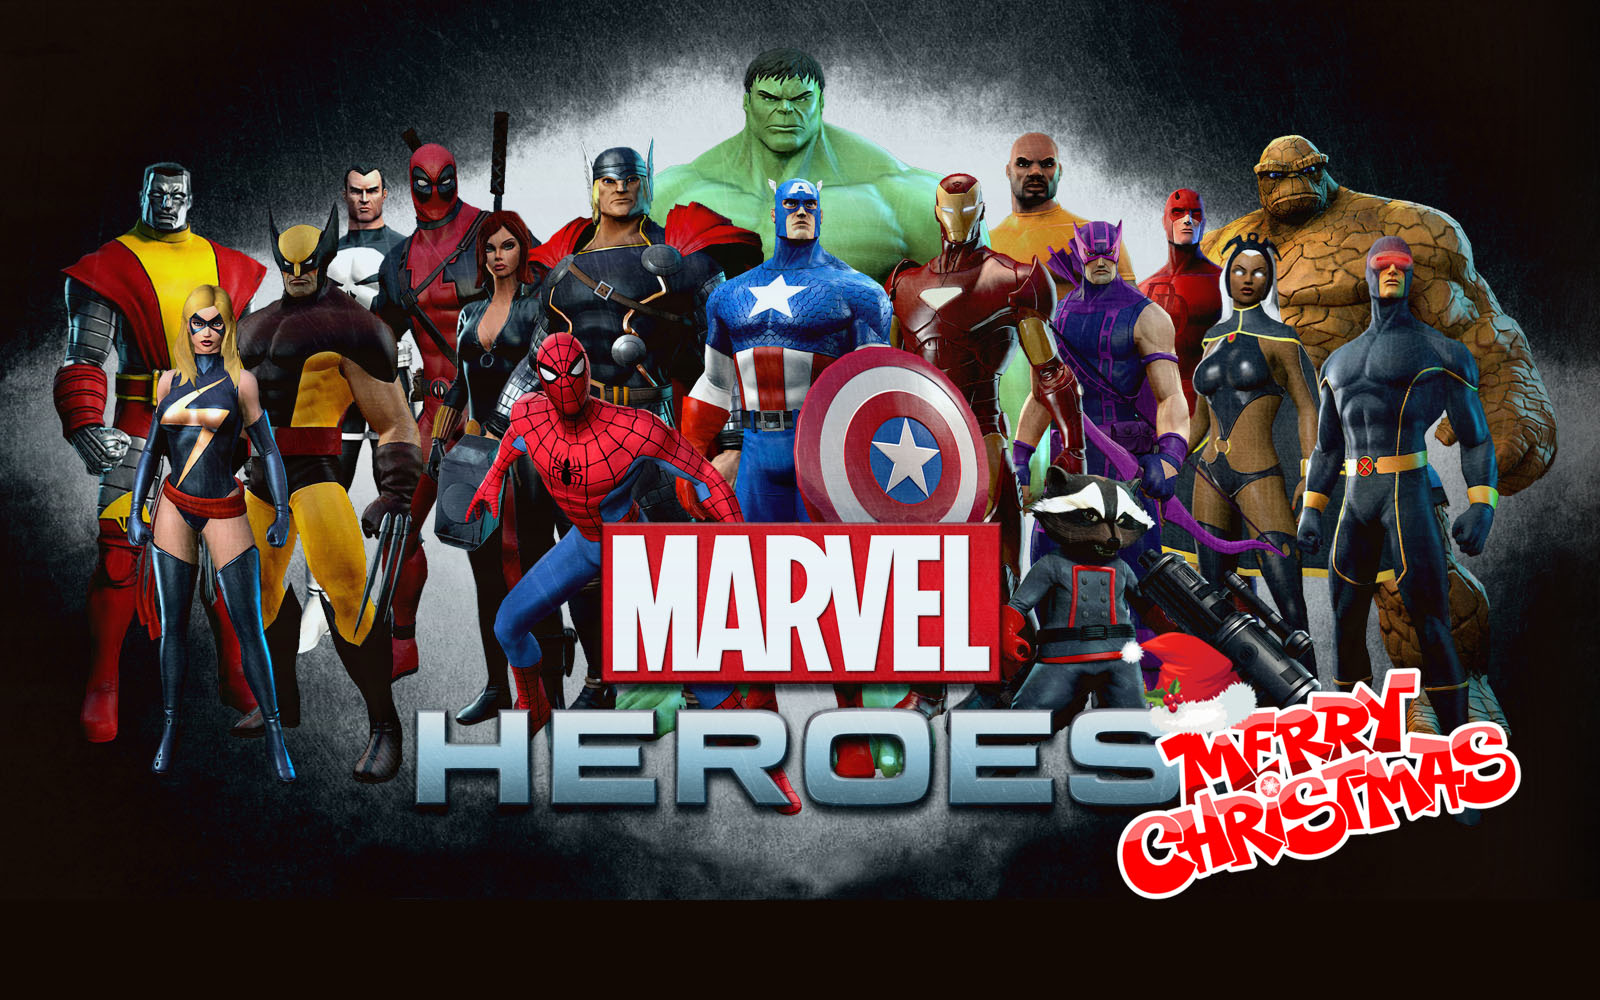 Marvel Super Heroes 60 Superhéroes: Happy Merry Christmas Wishes Marvel Avengers Team Super